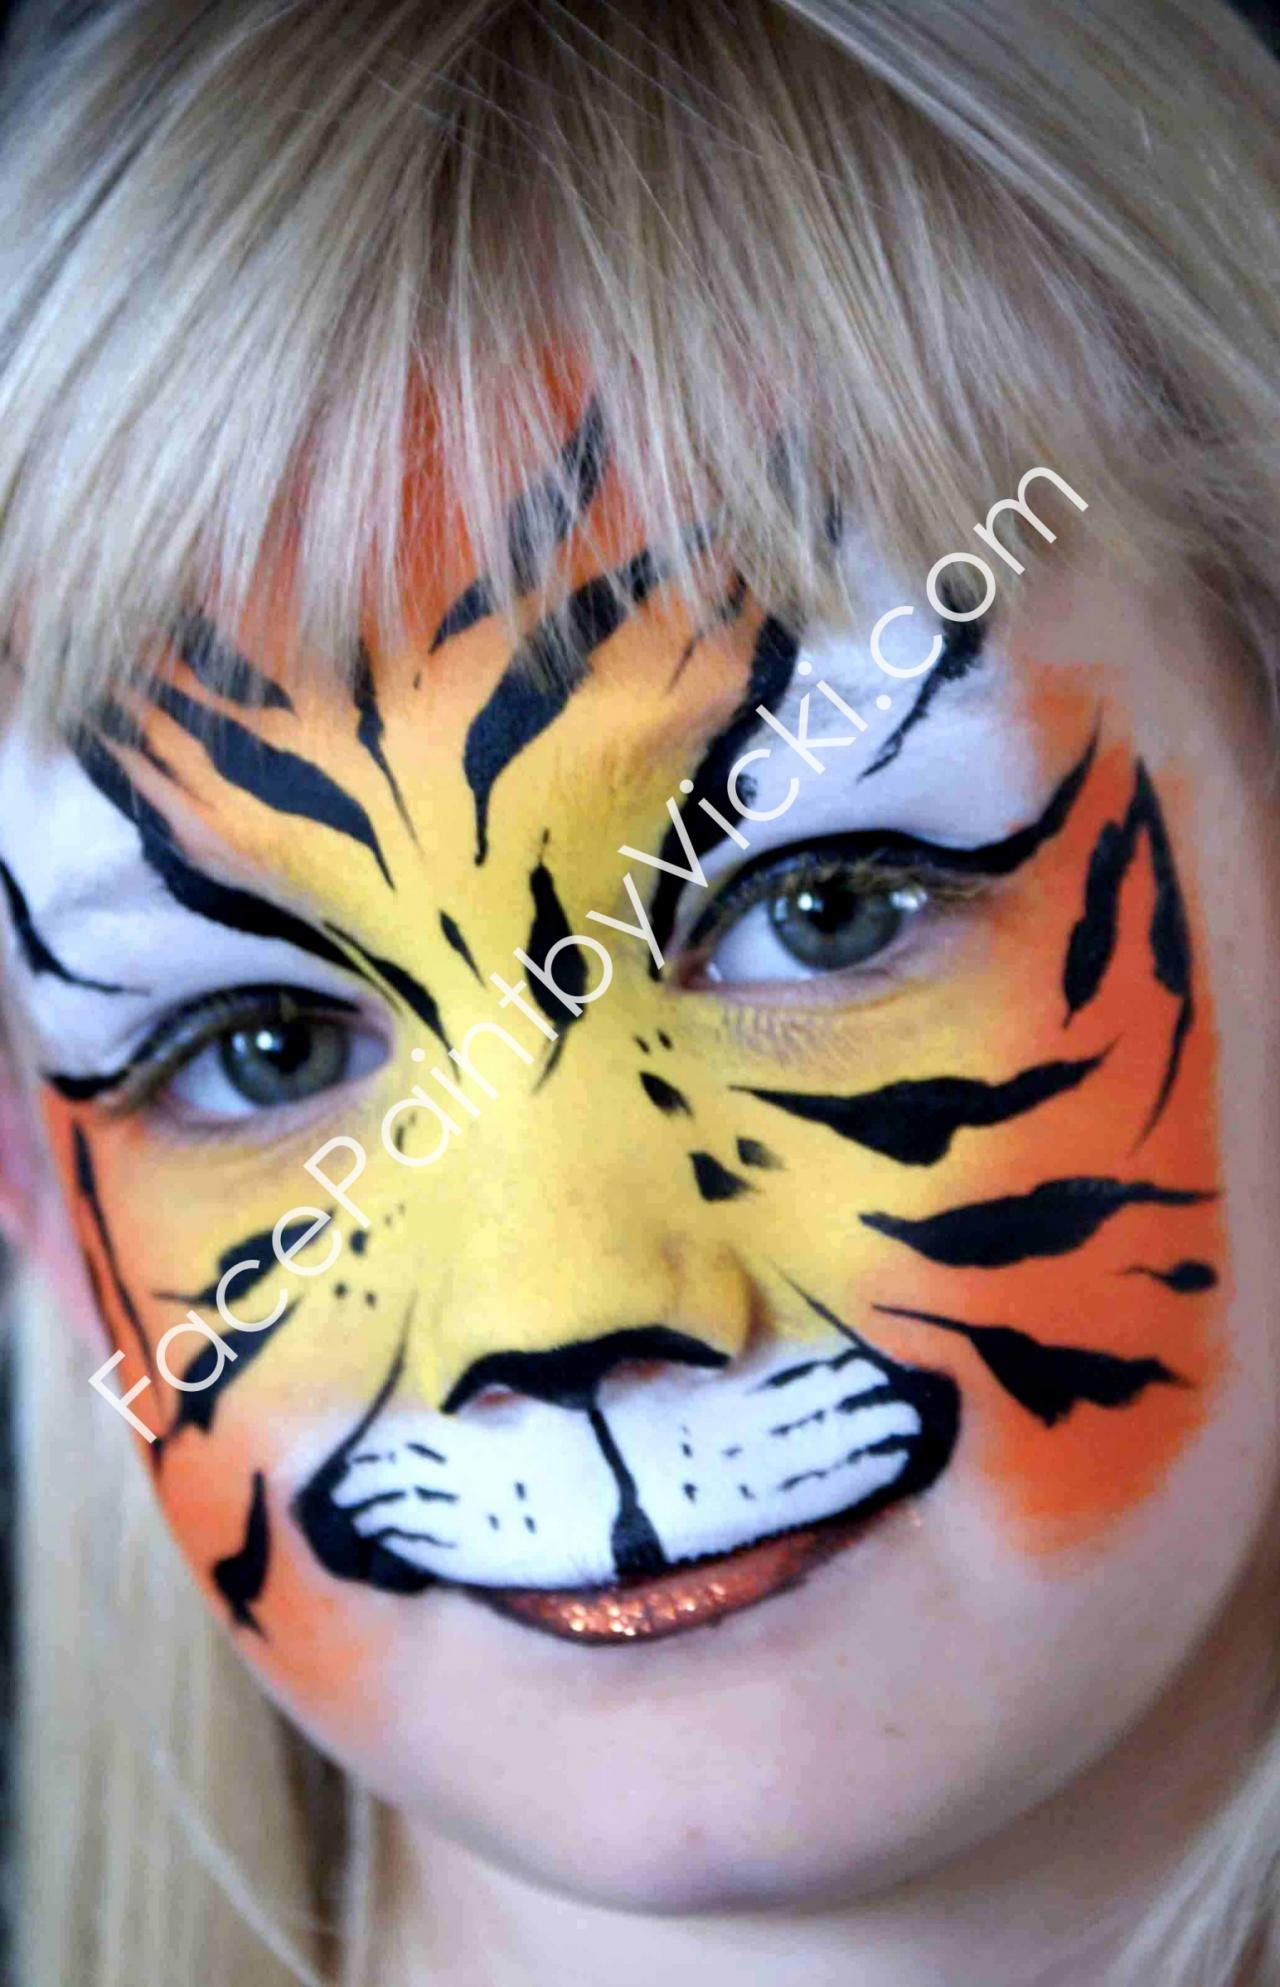 Face War Paint Designs http://hawaiidermatology.com/face/face-war-paint-designs-submited-images-pic-fly-downloads.htm